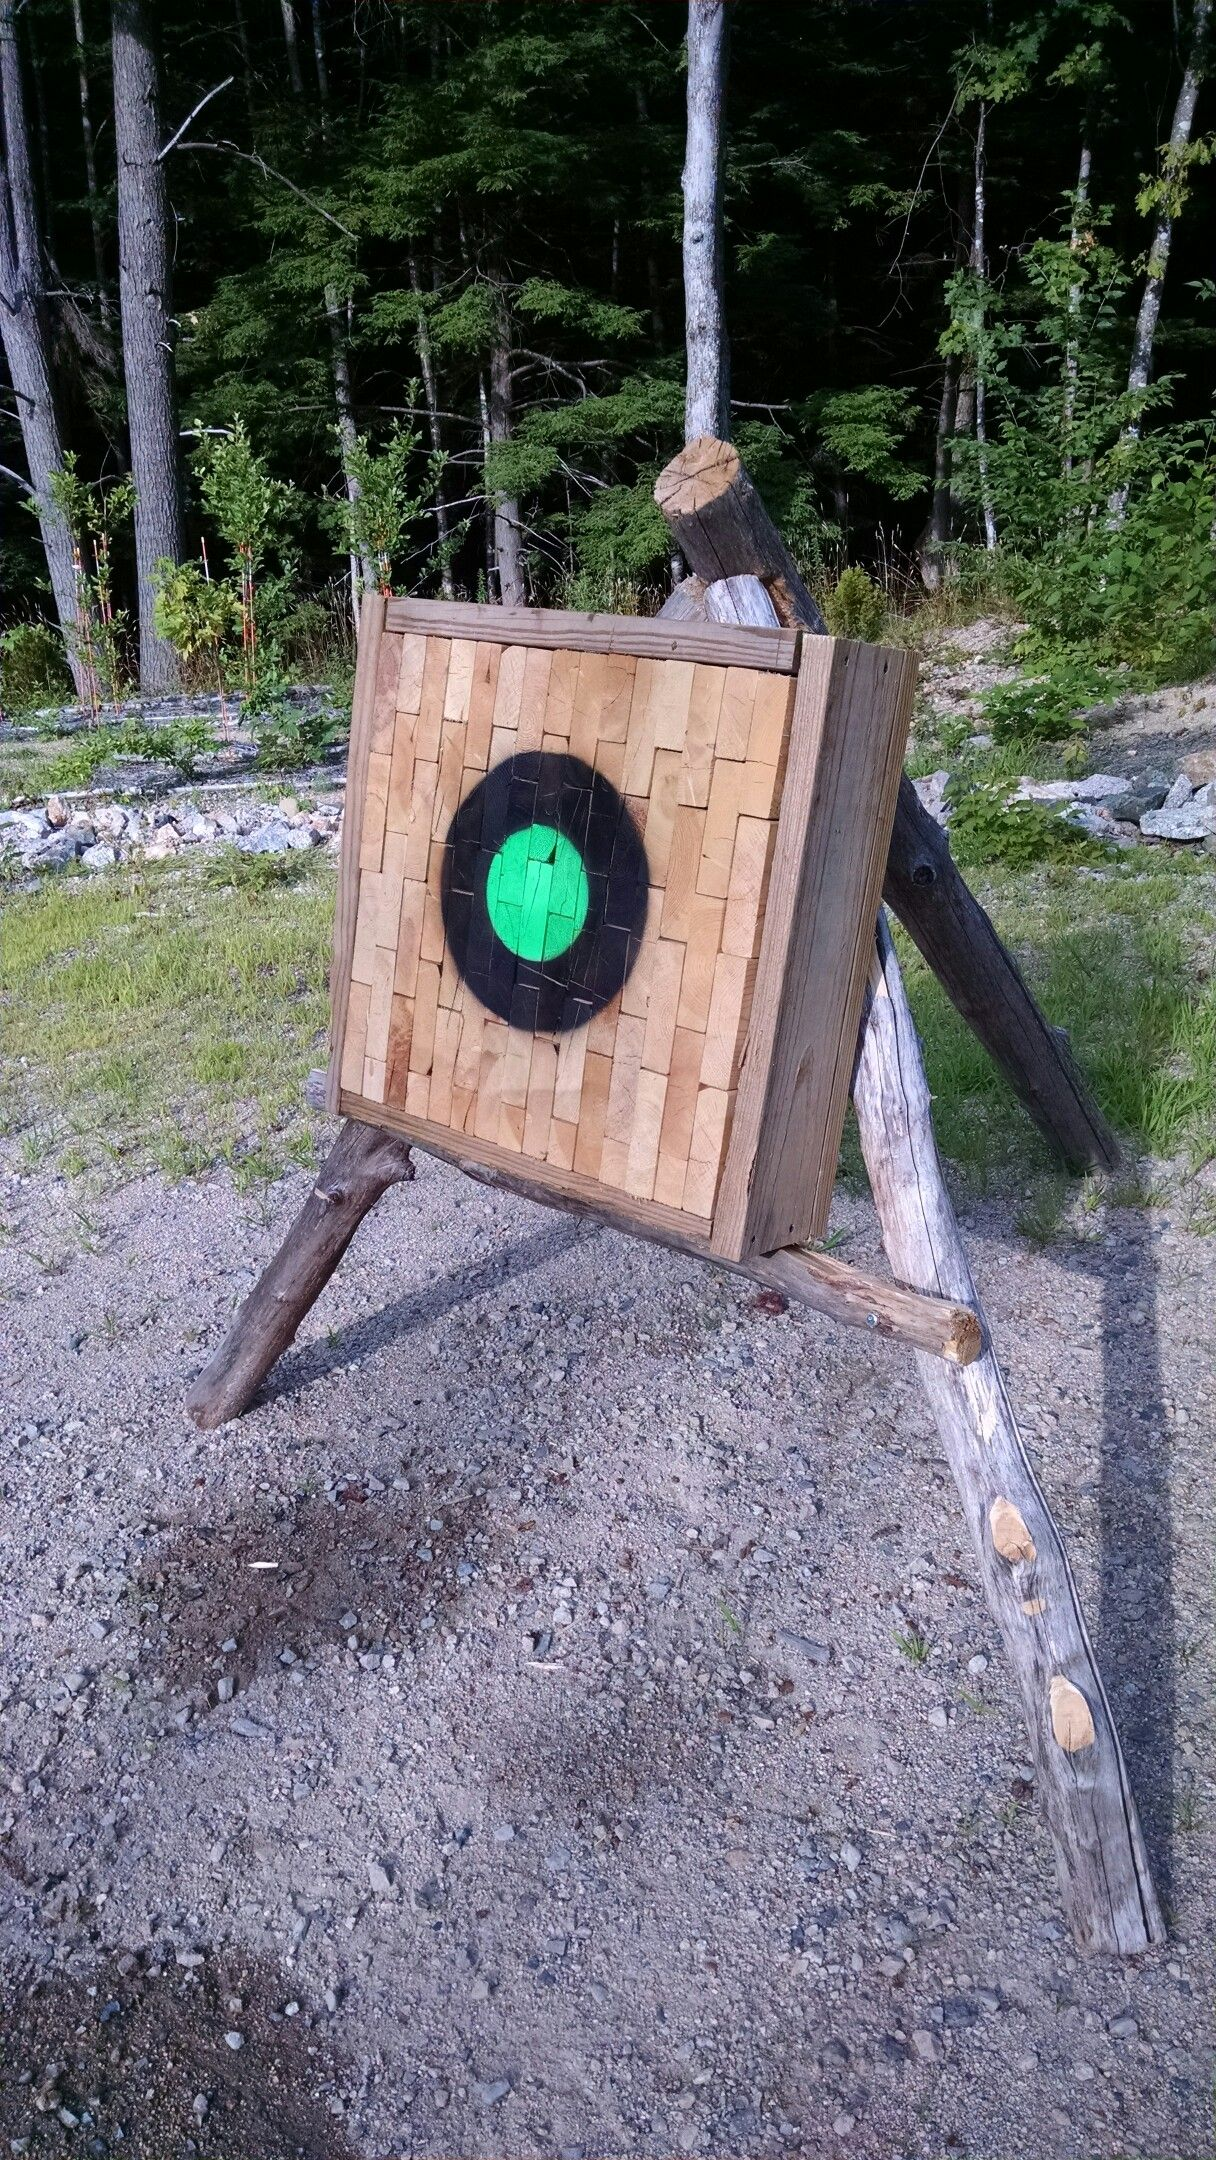 tomahawk target made from scrap 2x6 material. once they get